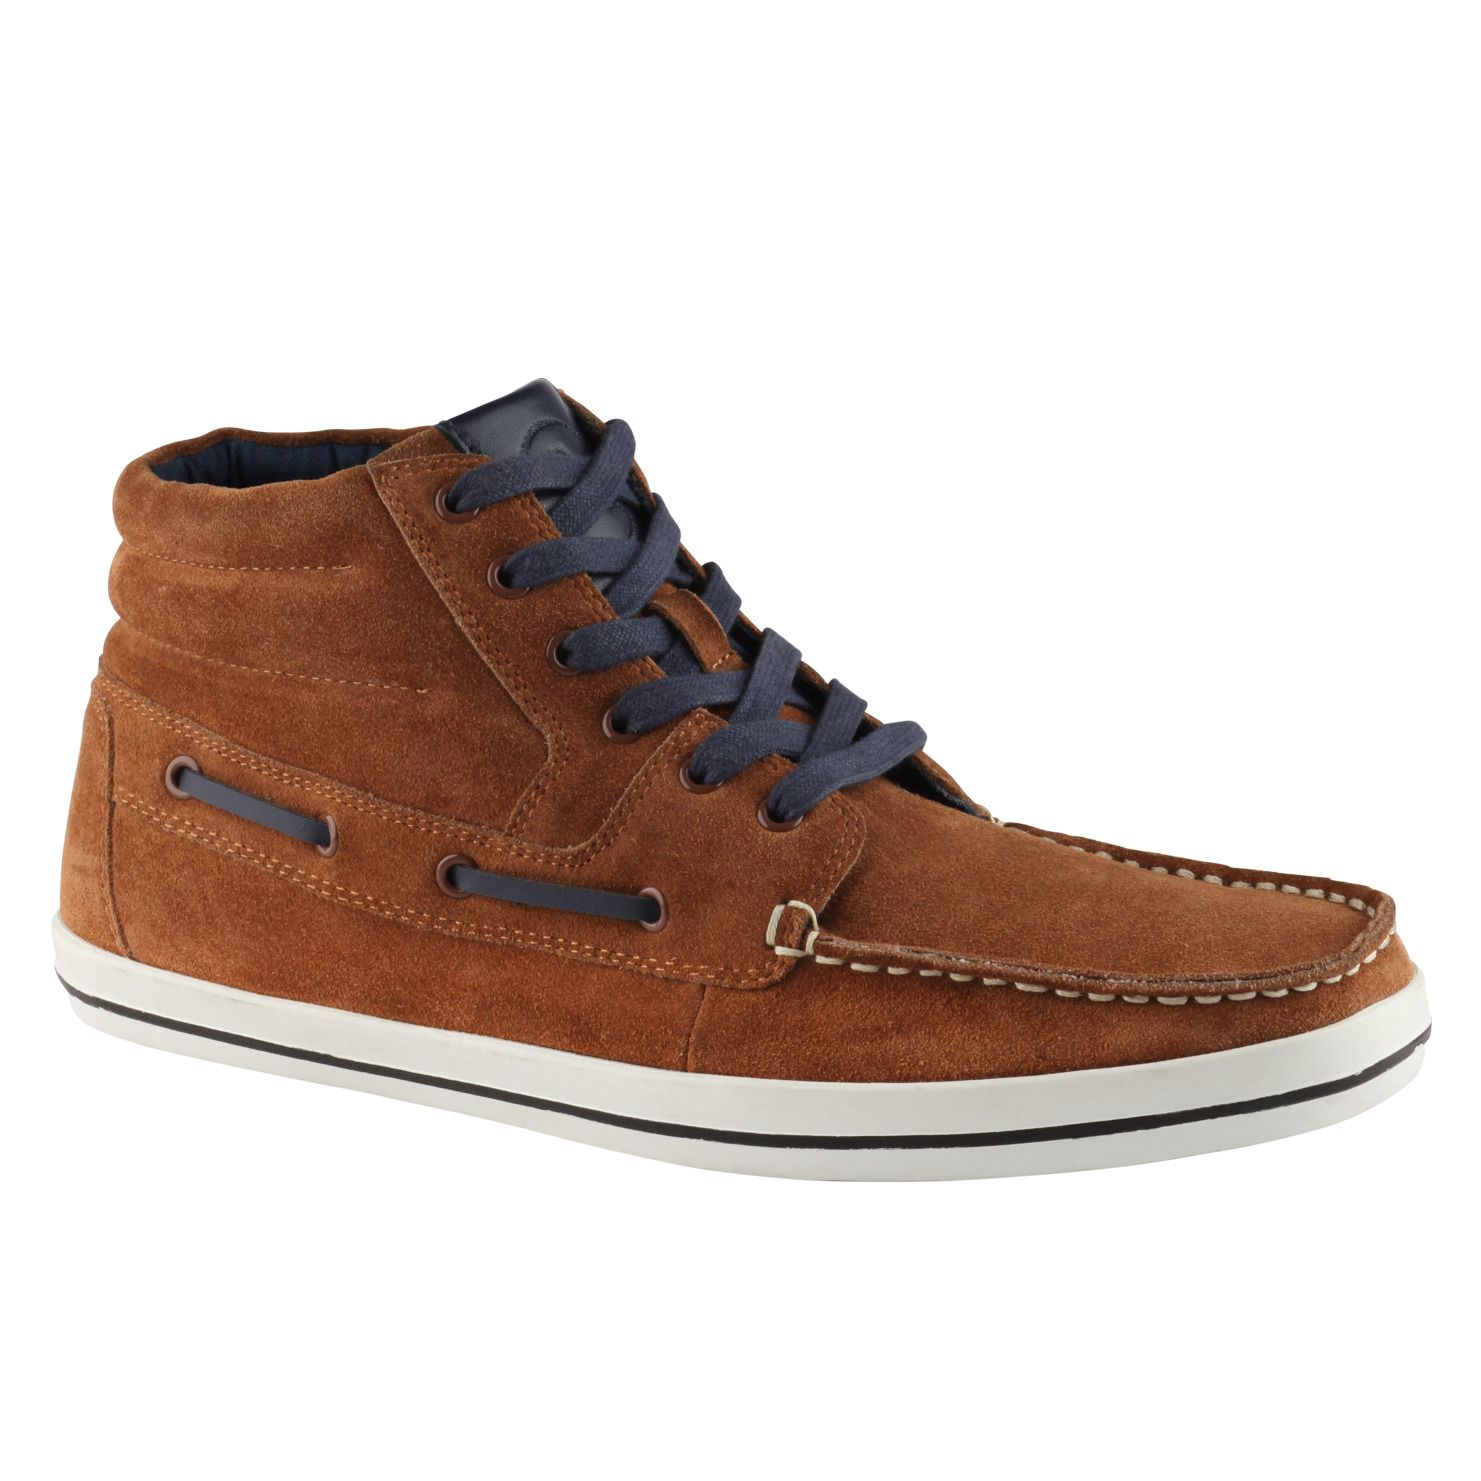 Syphers Men S Sneakers Shoes For Sale At Aldo Shoes Kicks Shoes Aldo Shoes Shoes Sneakers